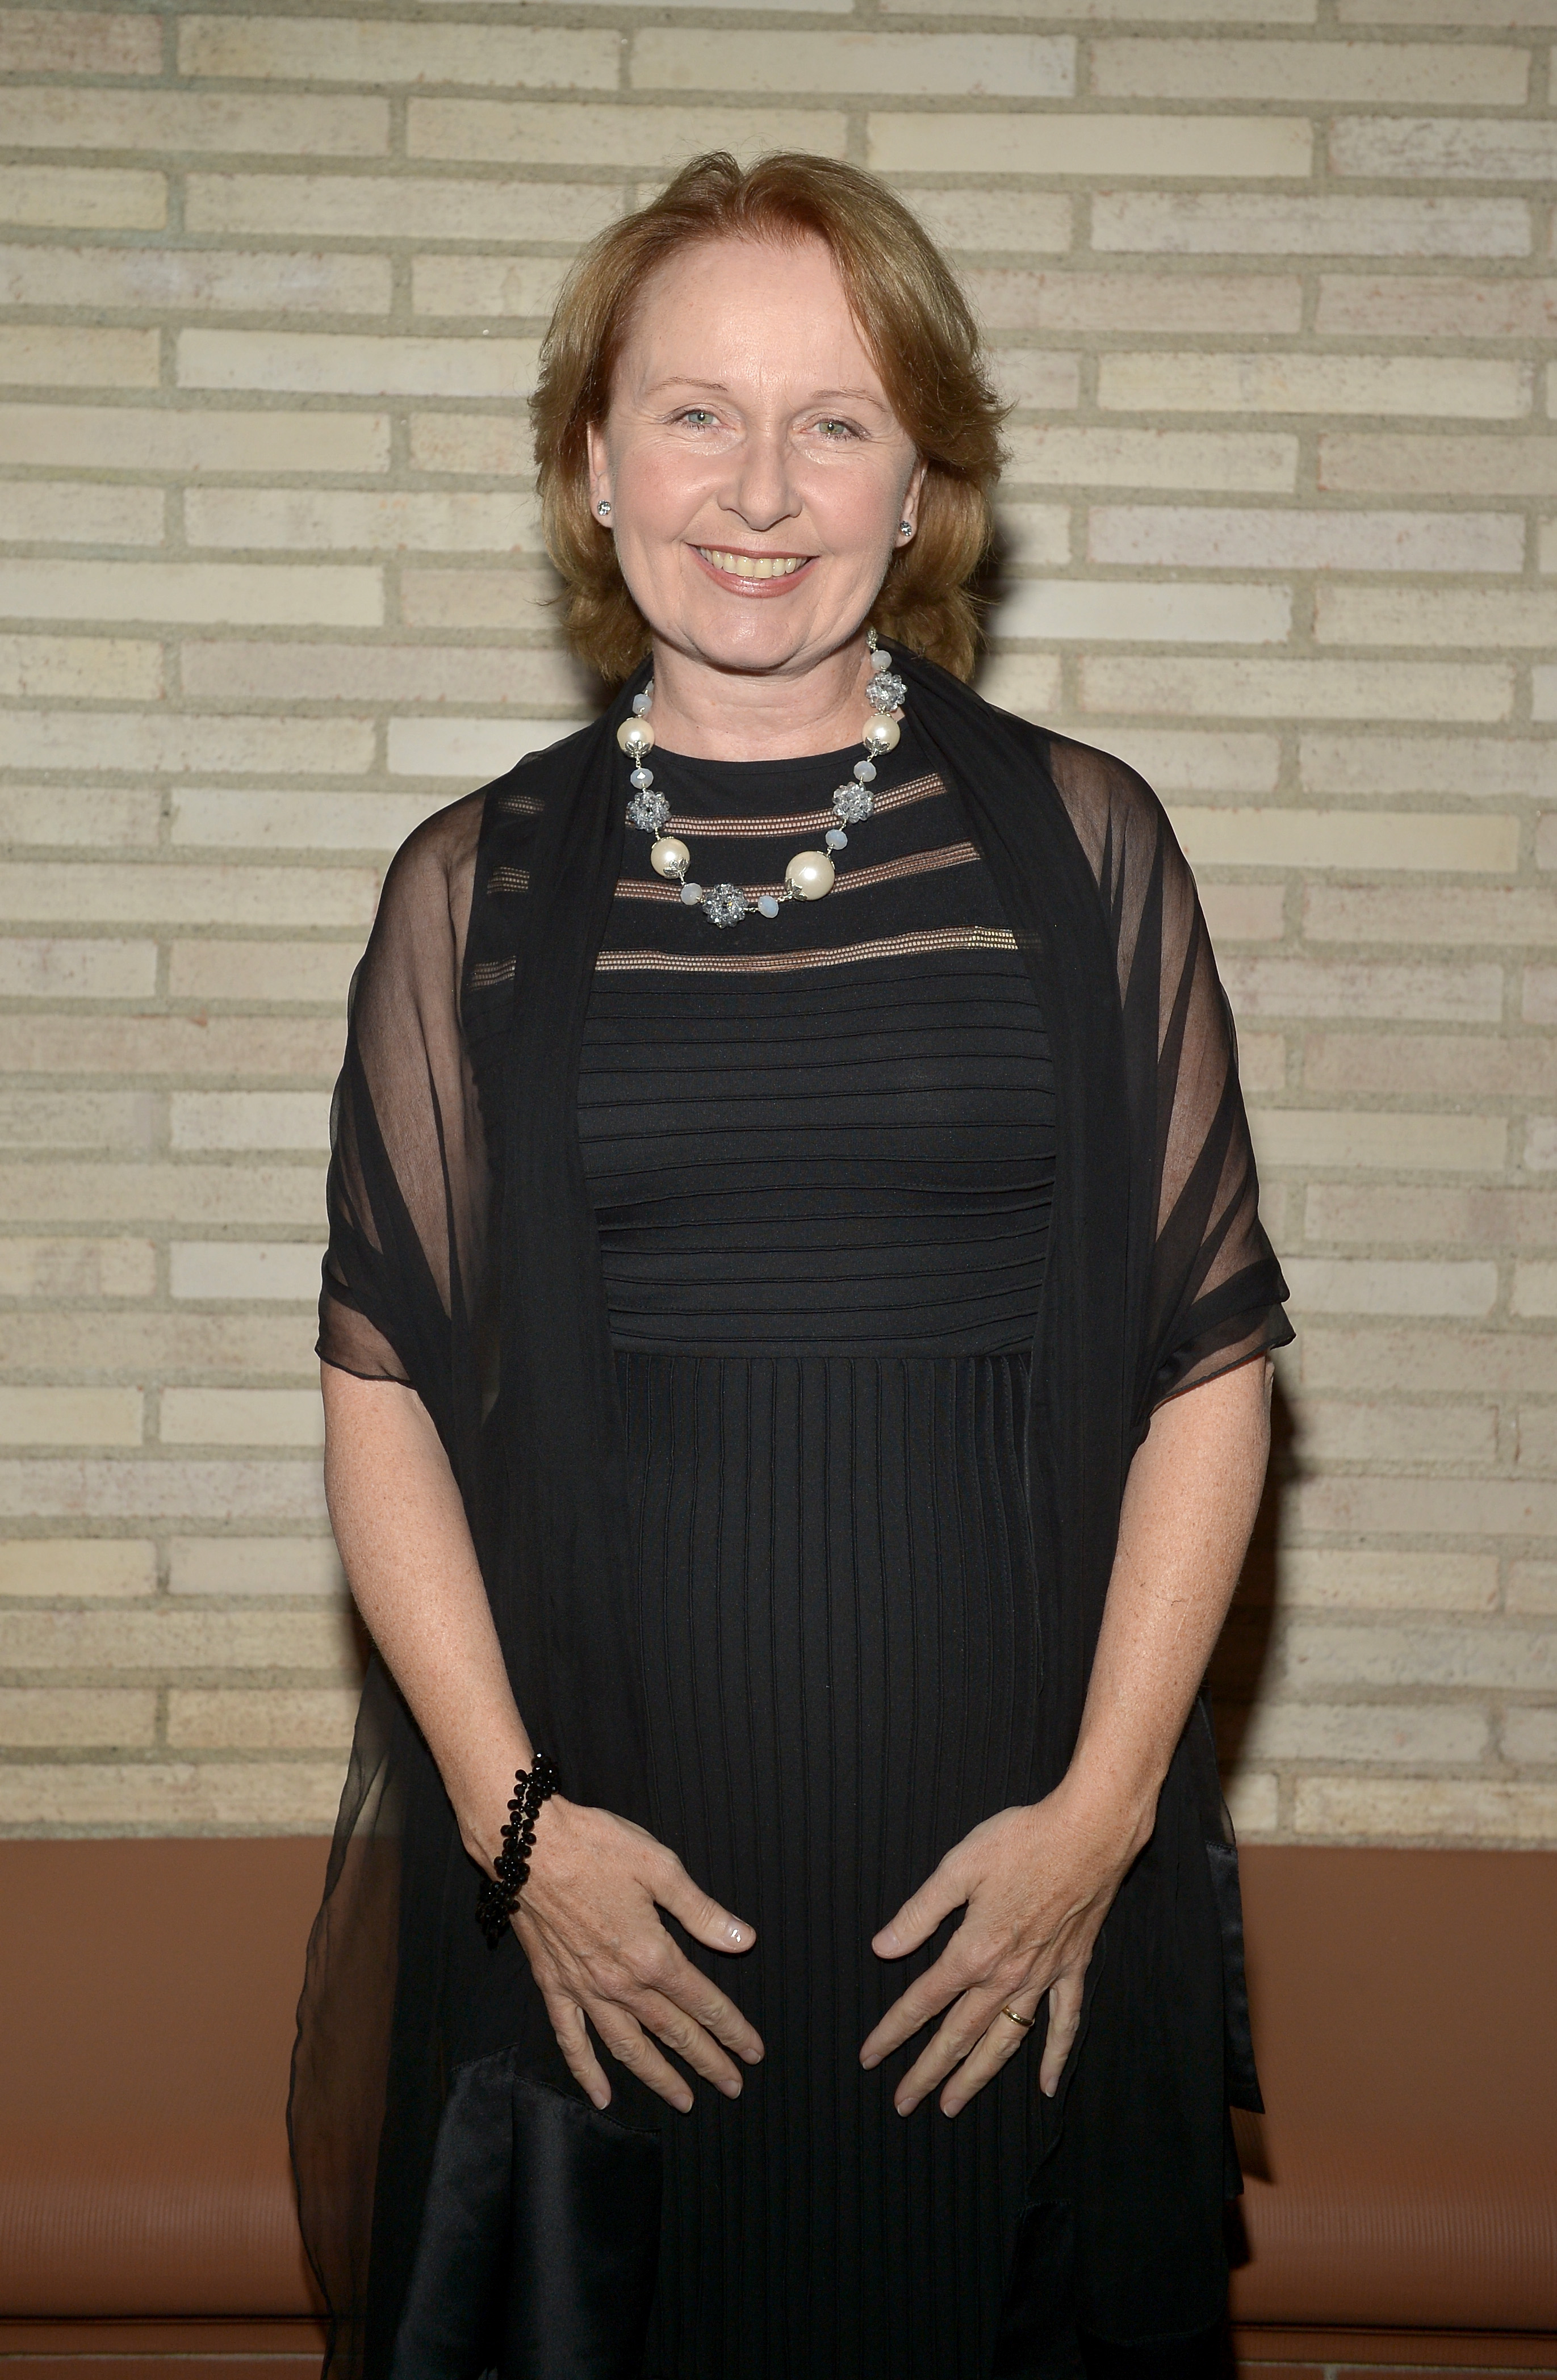 kate burton wikipediakate burton elizabeth taylor, kate burton richard, kate burton young, kate burton, kate burton scandal, kate burton actress, kate burton wiki, kate burton wikipedia, kate burton alice in wonderland, kate burton imdb, kate burton spa, kate burton net worth, kate burton golf, kate burton facebook, kate burton photography, kate burton interview, kate burton feet, kate burton pontypool, kate burton twitter, kate burton grimm